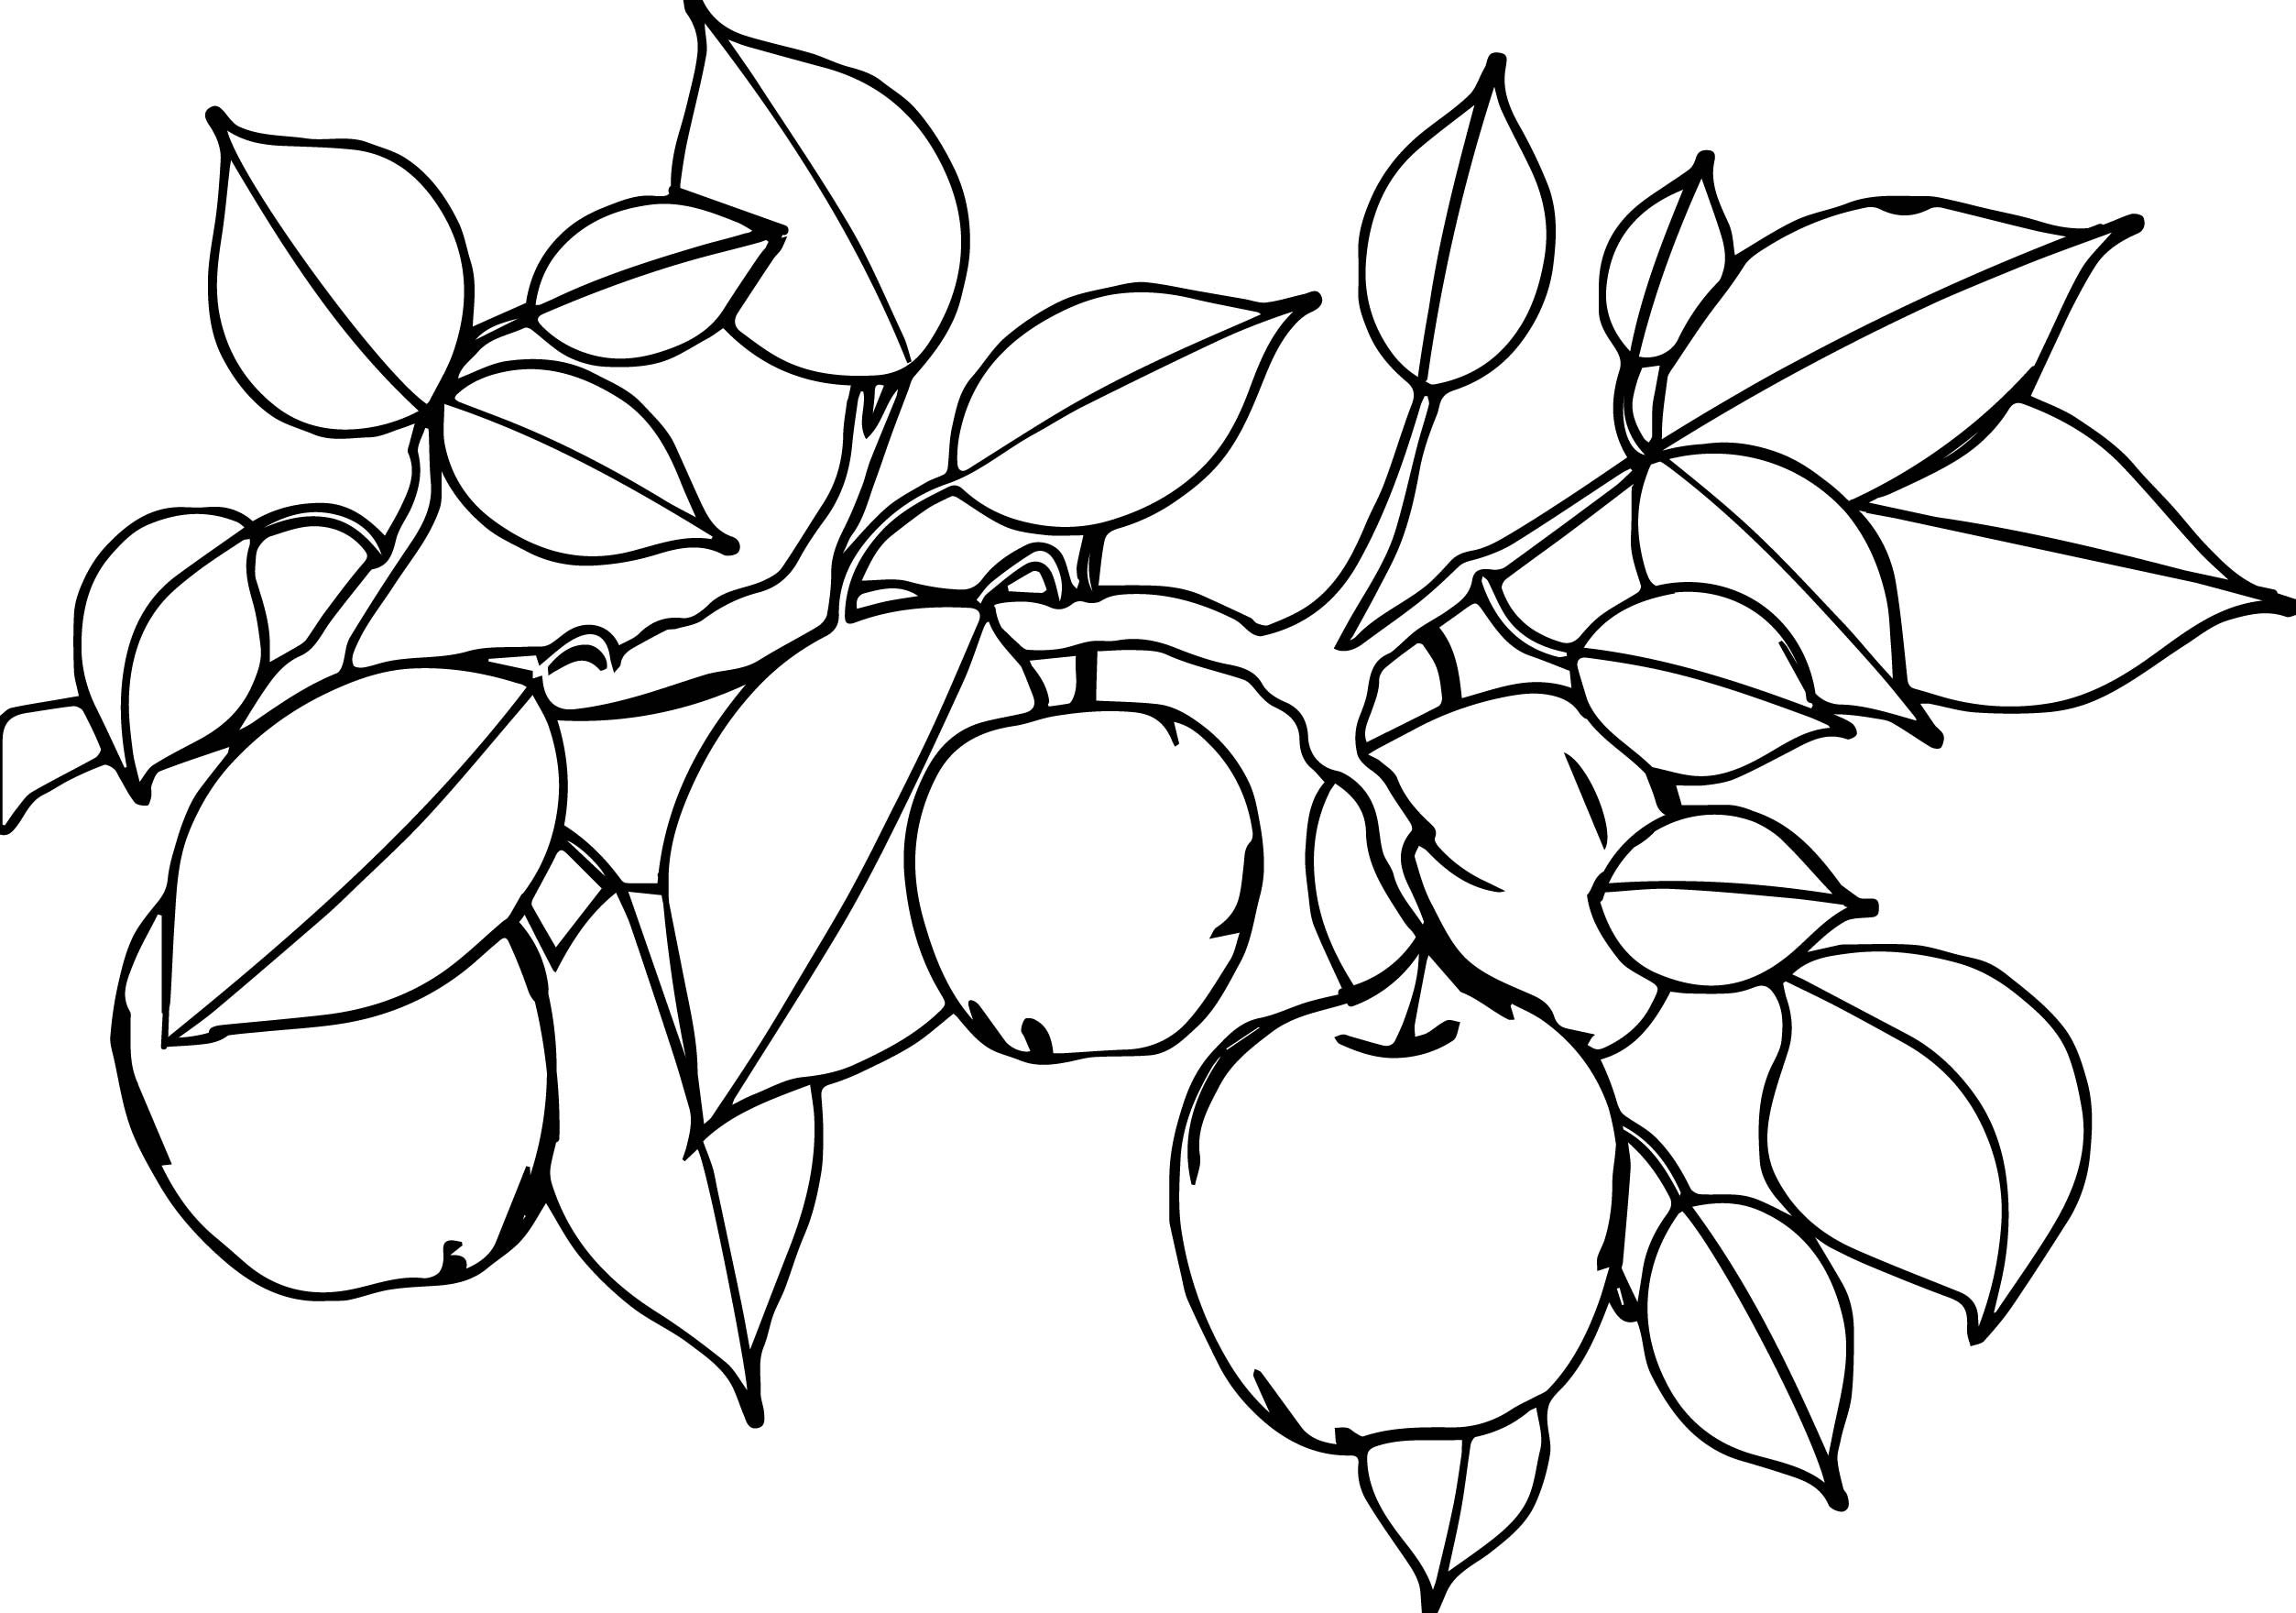 Apple Tree Leaf Coloring Page Wecoloringpage